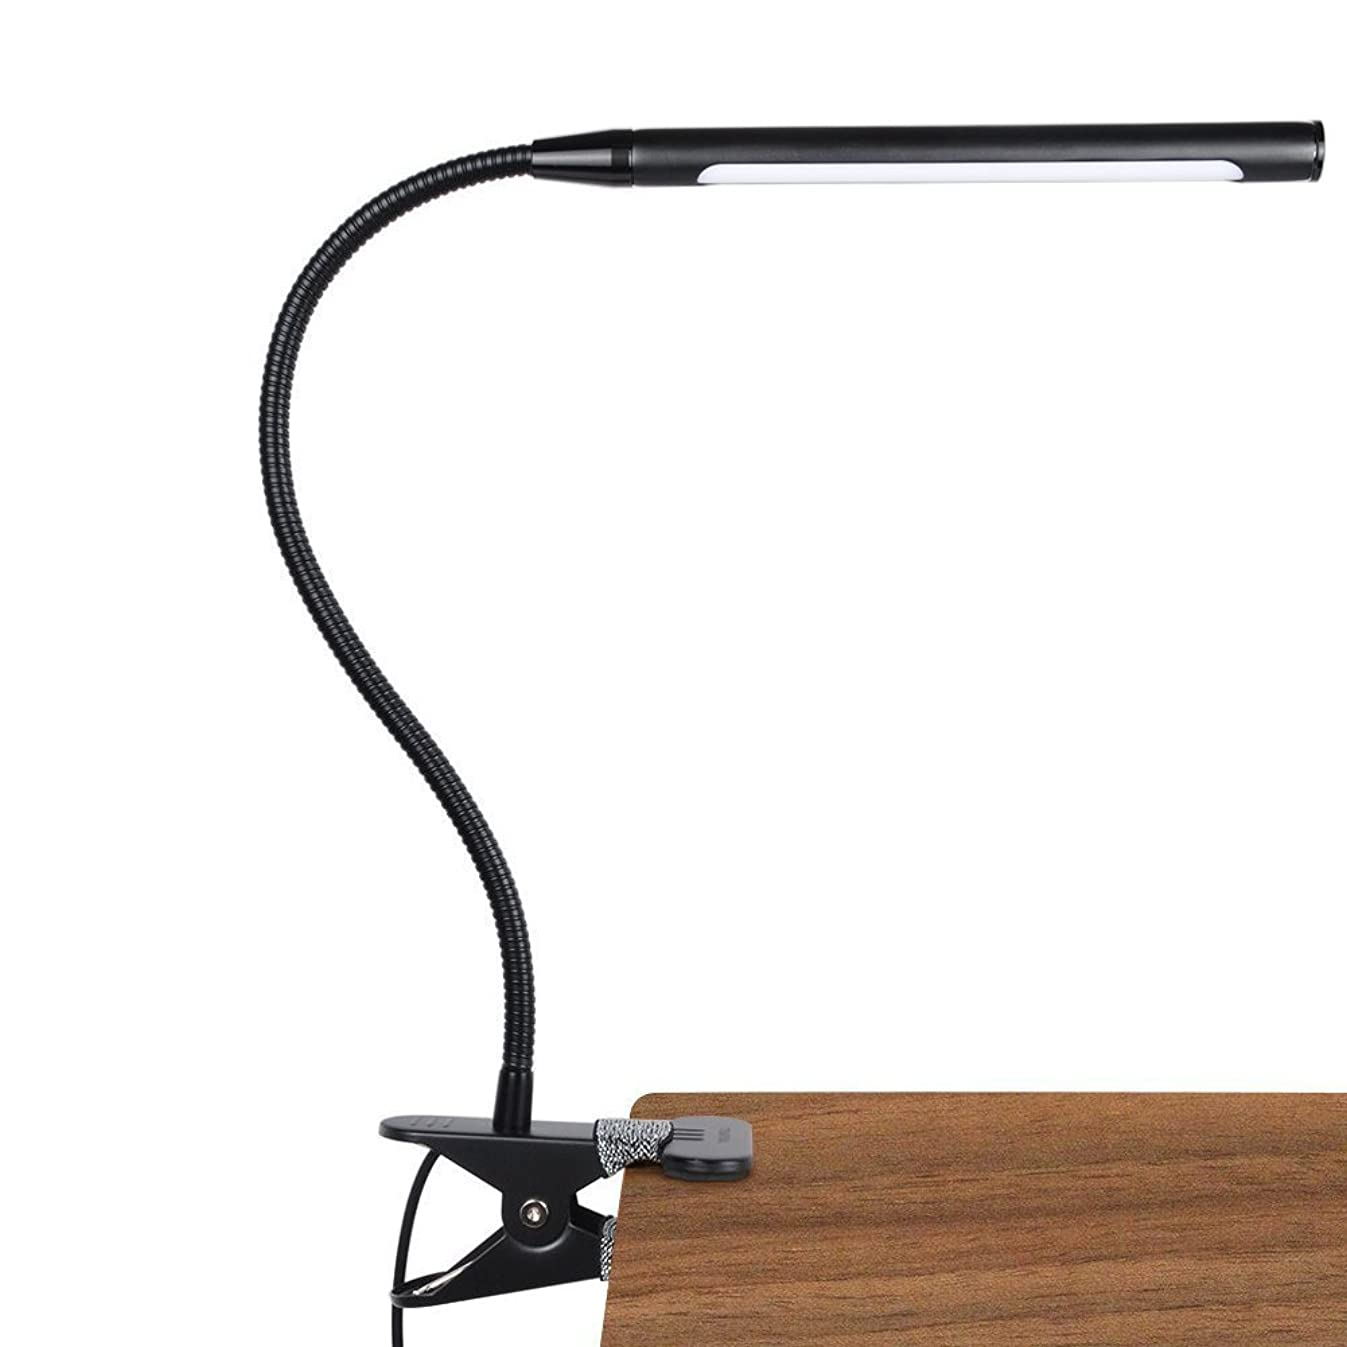 LEPOWER 4W Led Clip on Light/Reading Lights/Night Book Light/Clamp on Lights, 3 Color Temperature Settings Stepless Adjustable Brightness Clip Lamps for Desk, Bed Headboard, Computer and Piano